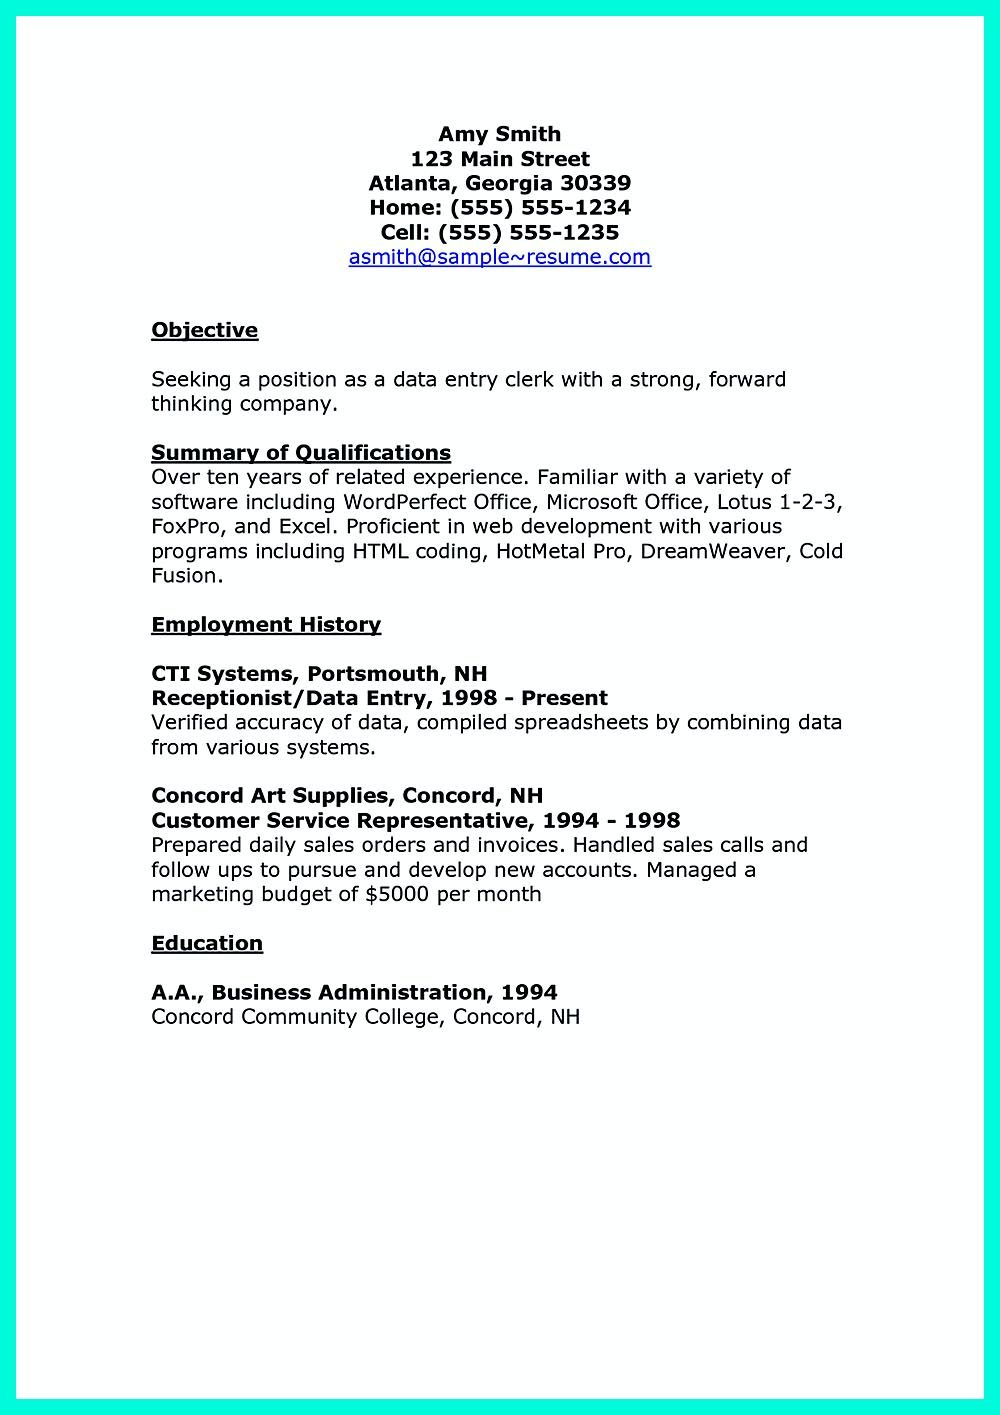 Data Entry Job Description for Resume - Pin On Resume Sample Template and format Pinterest